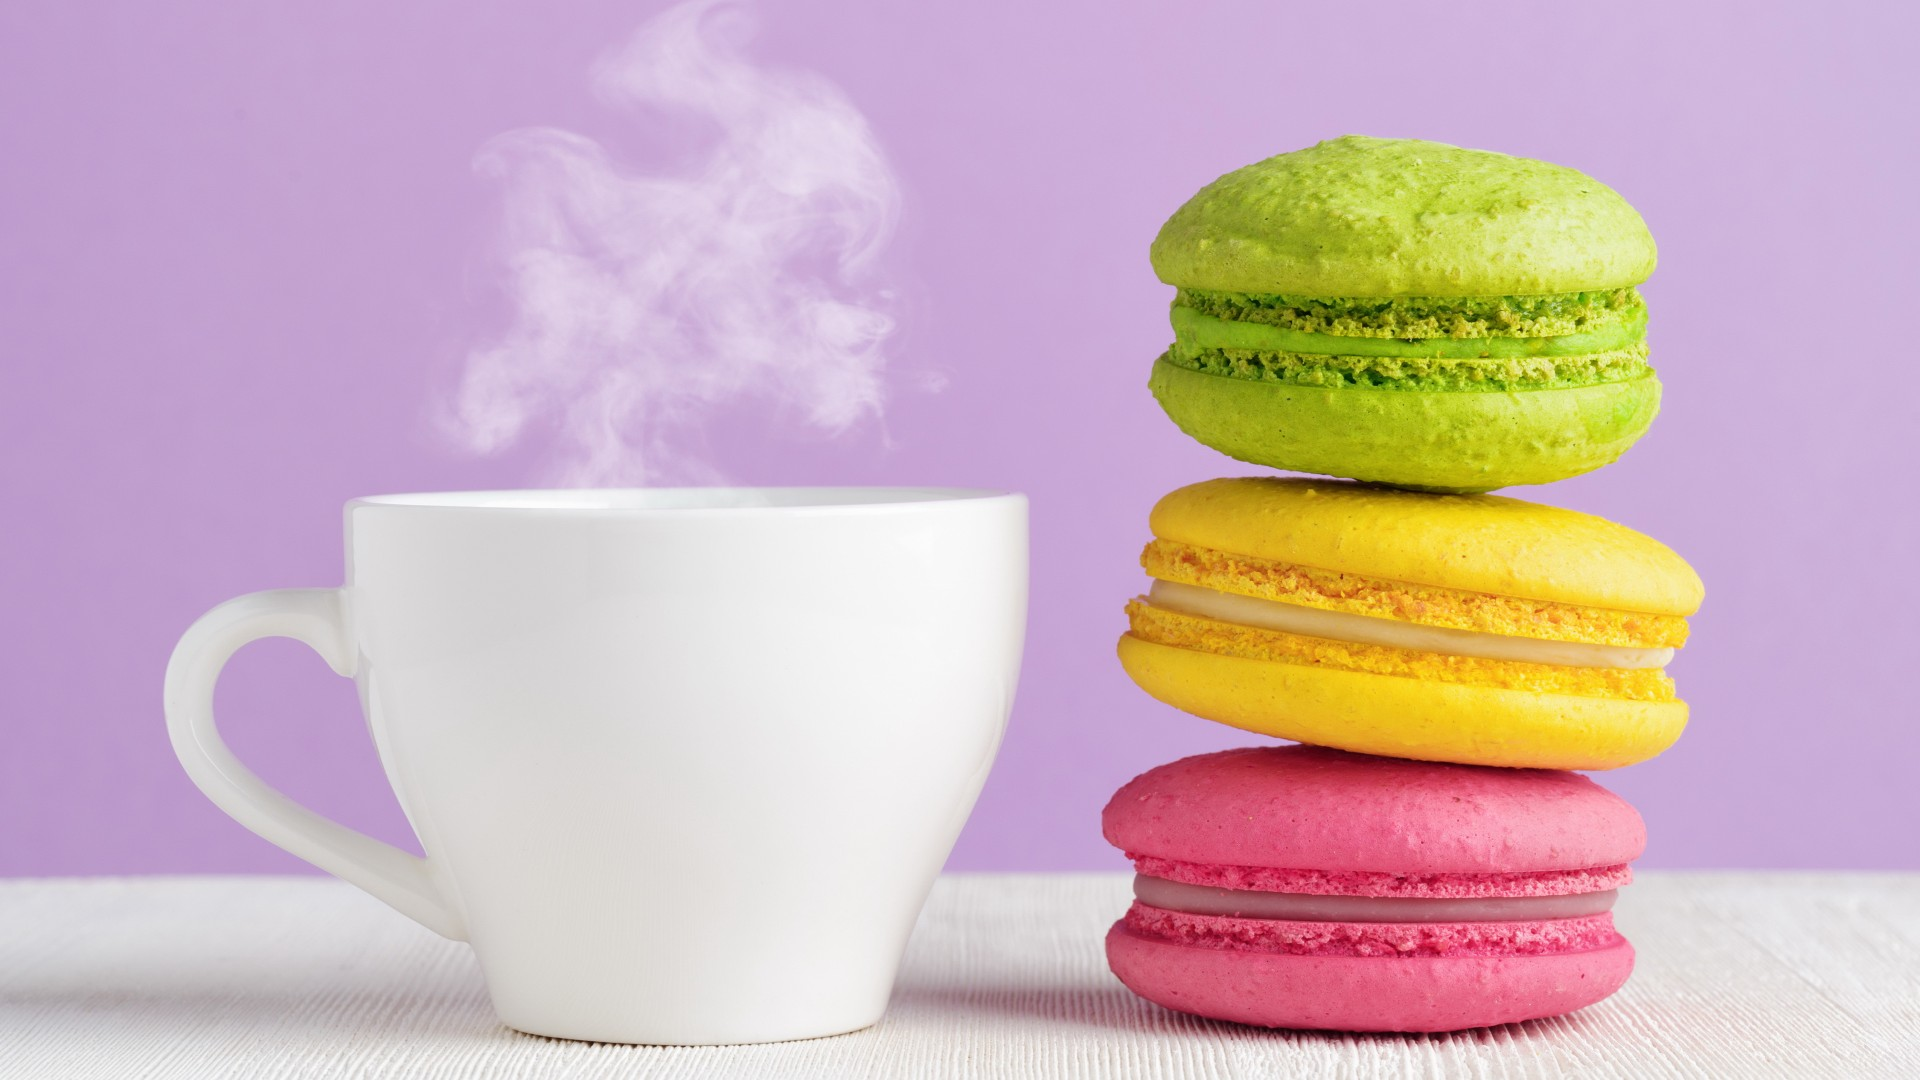 Steaming cup of coffee and colorful macaroons wallpaper 1920x1080